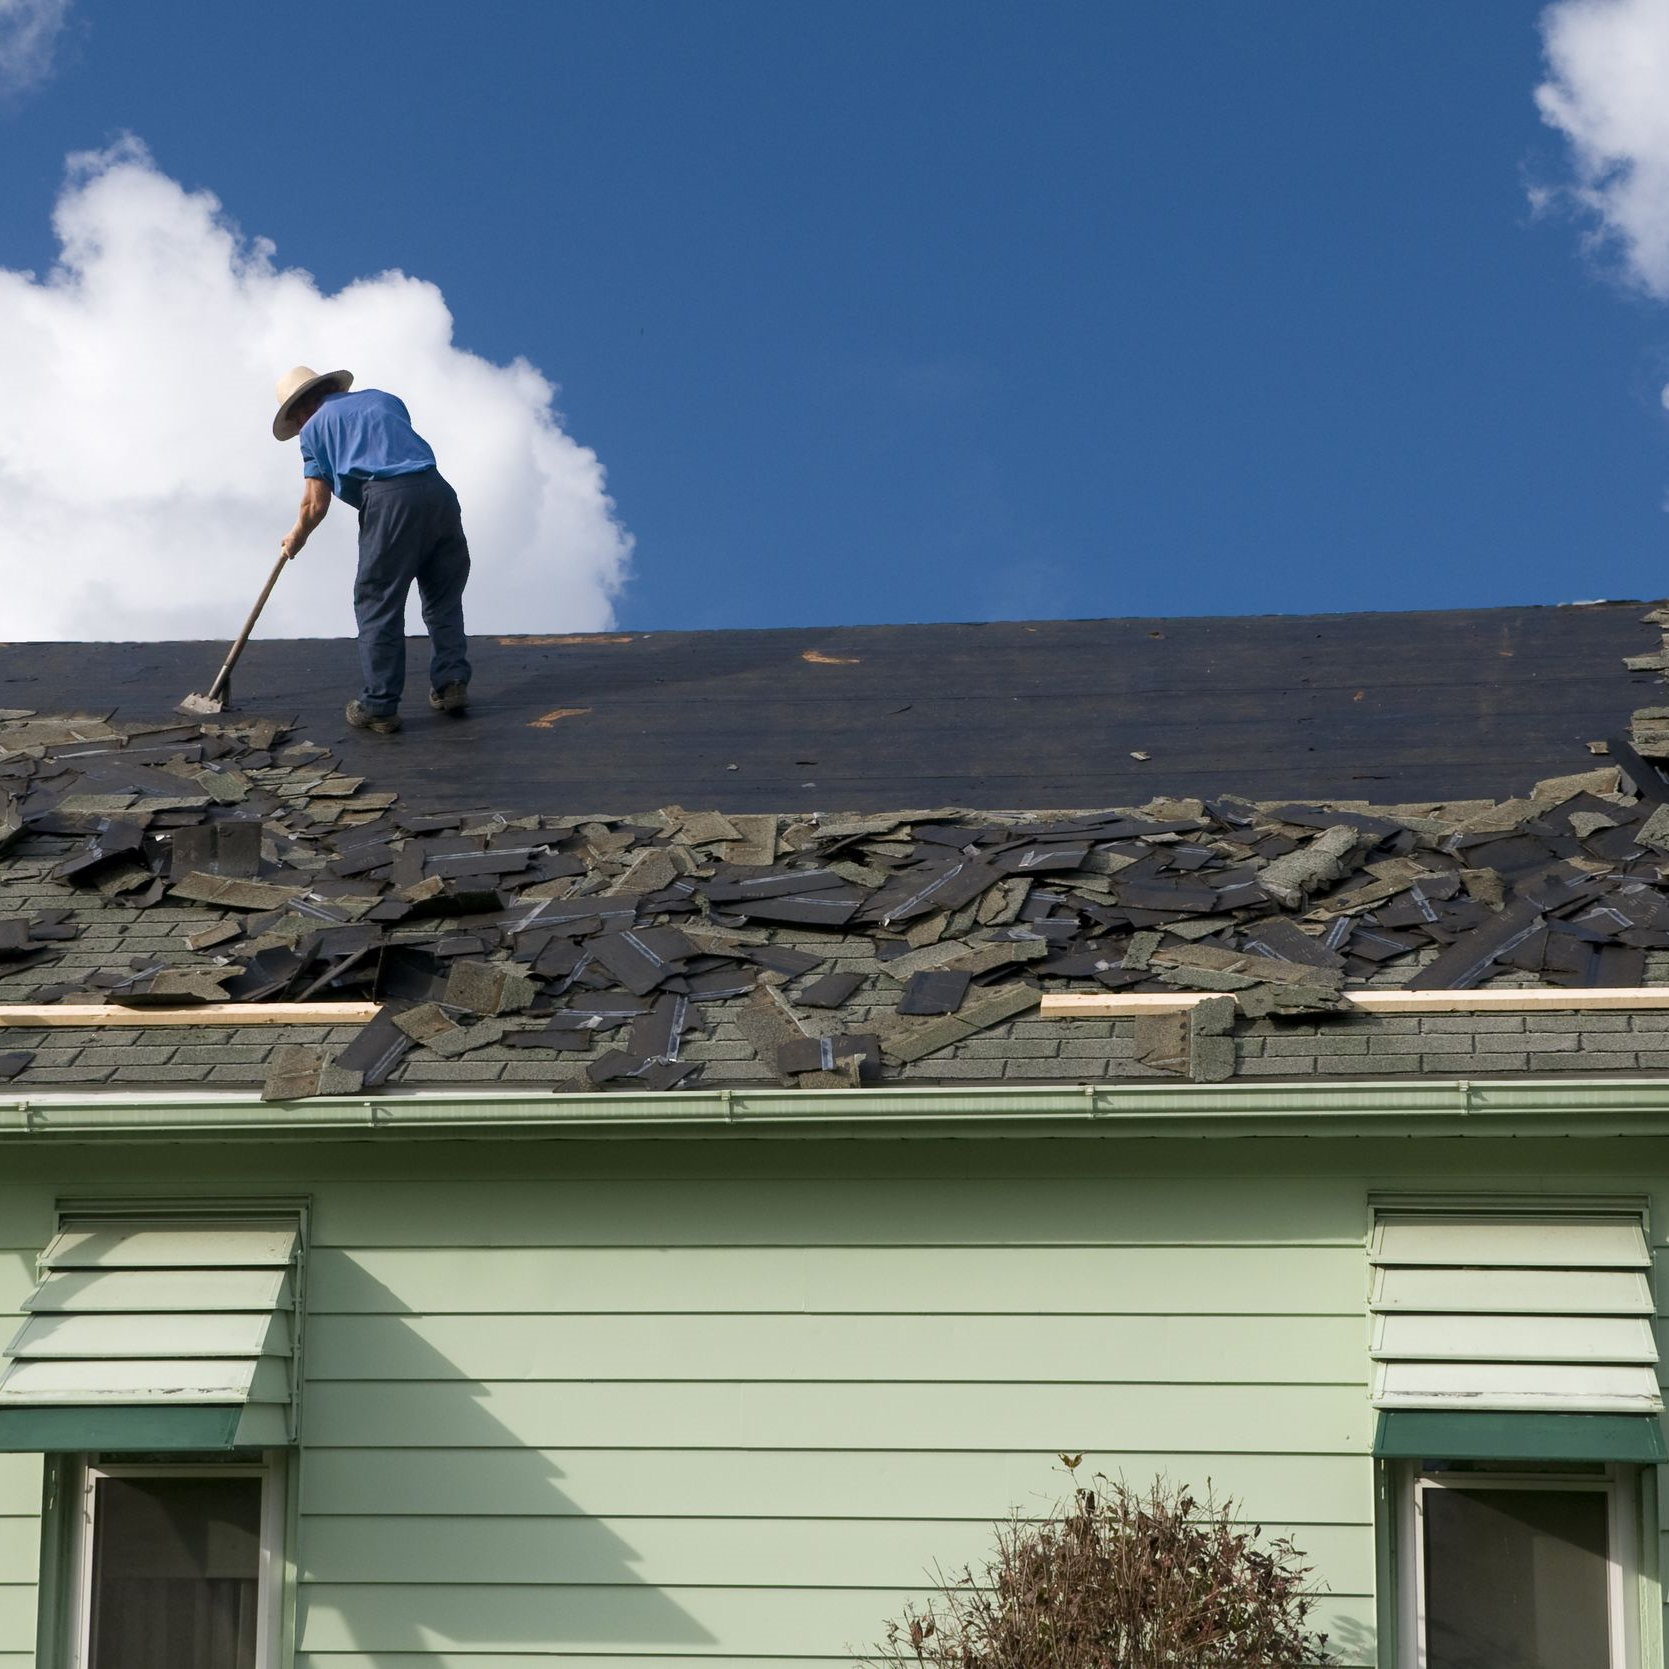 Roofer removing damaged shingles before replacement.